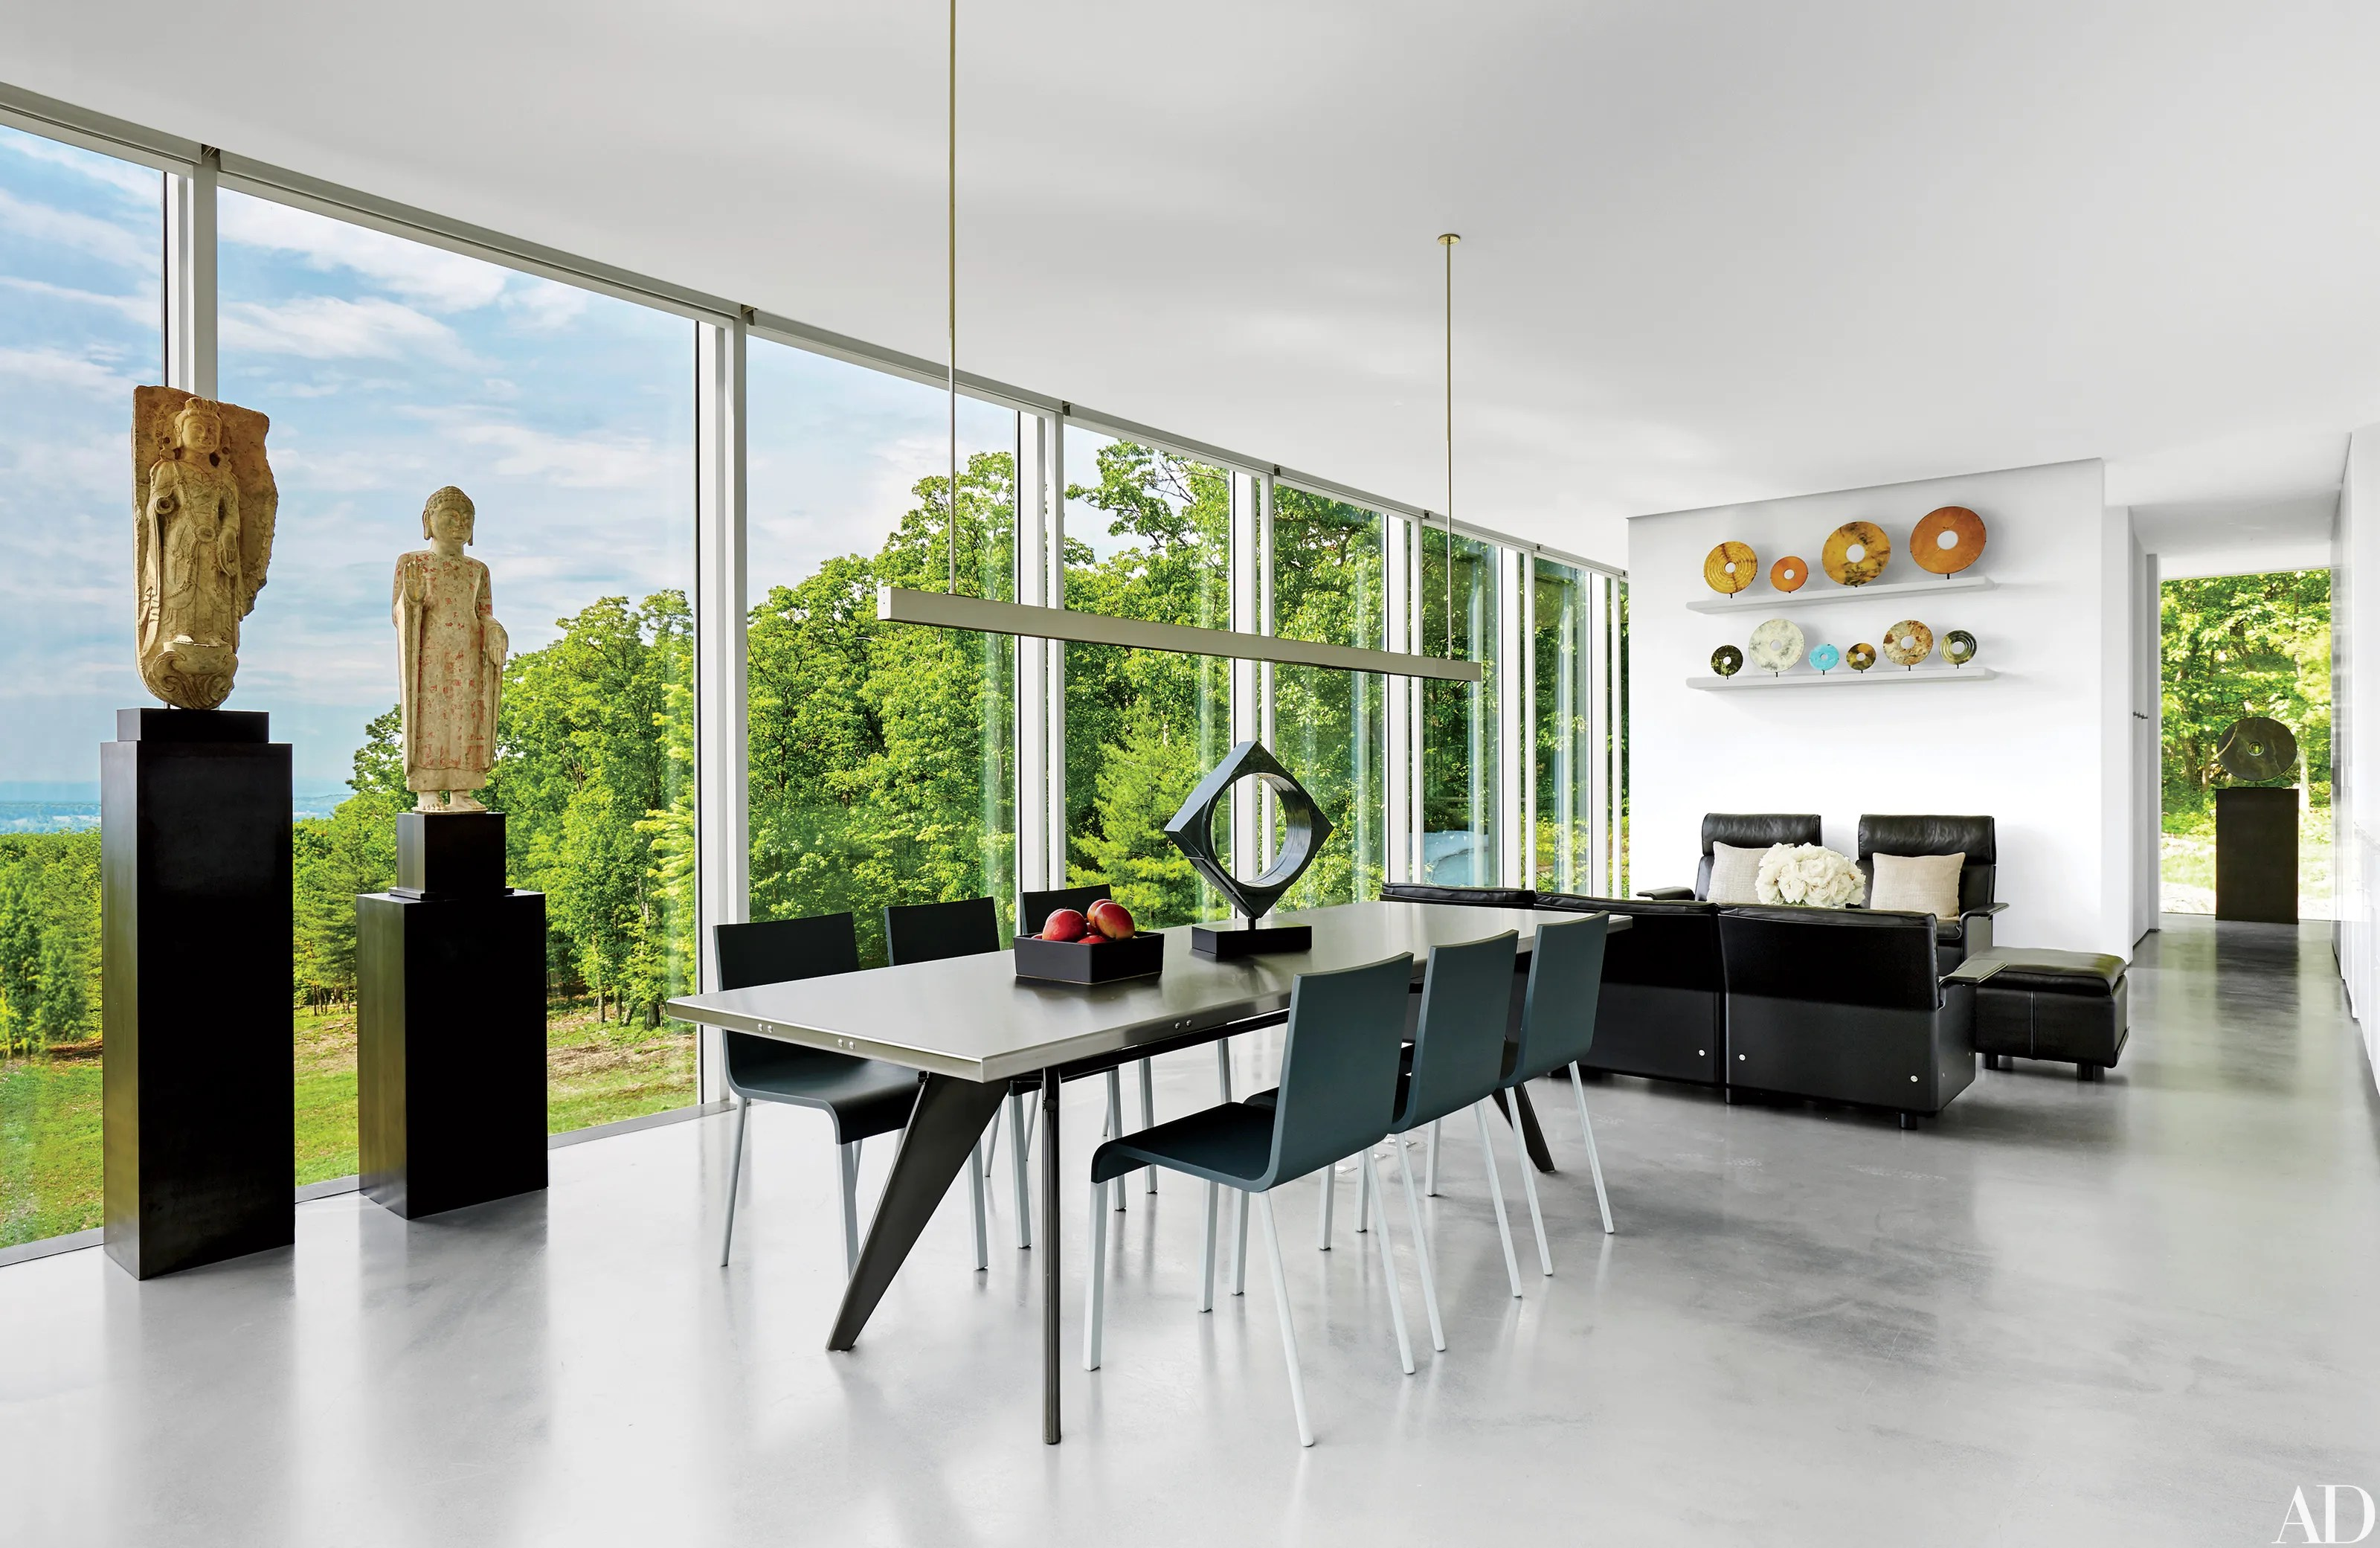 Contemporary Interior Design: 13 Striking And Sleek Rooms